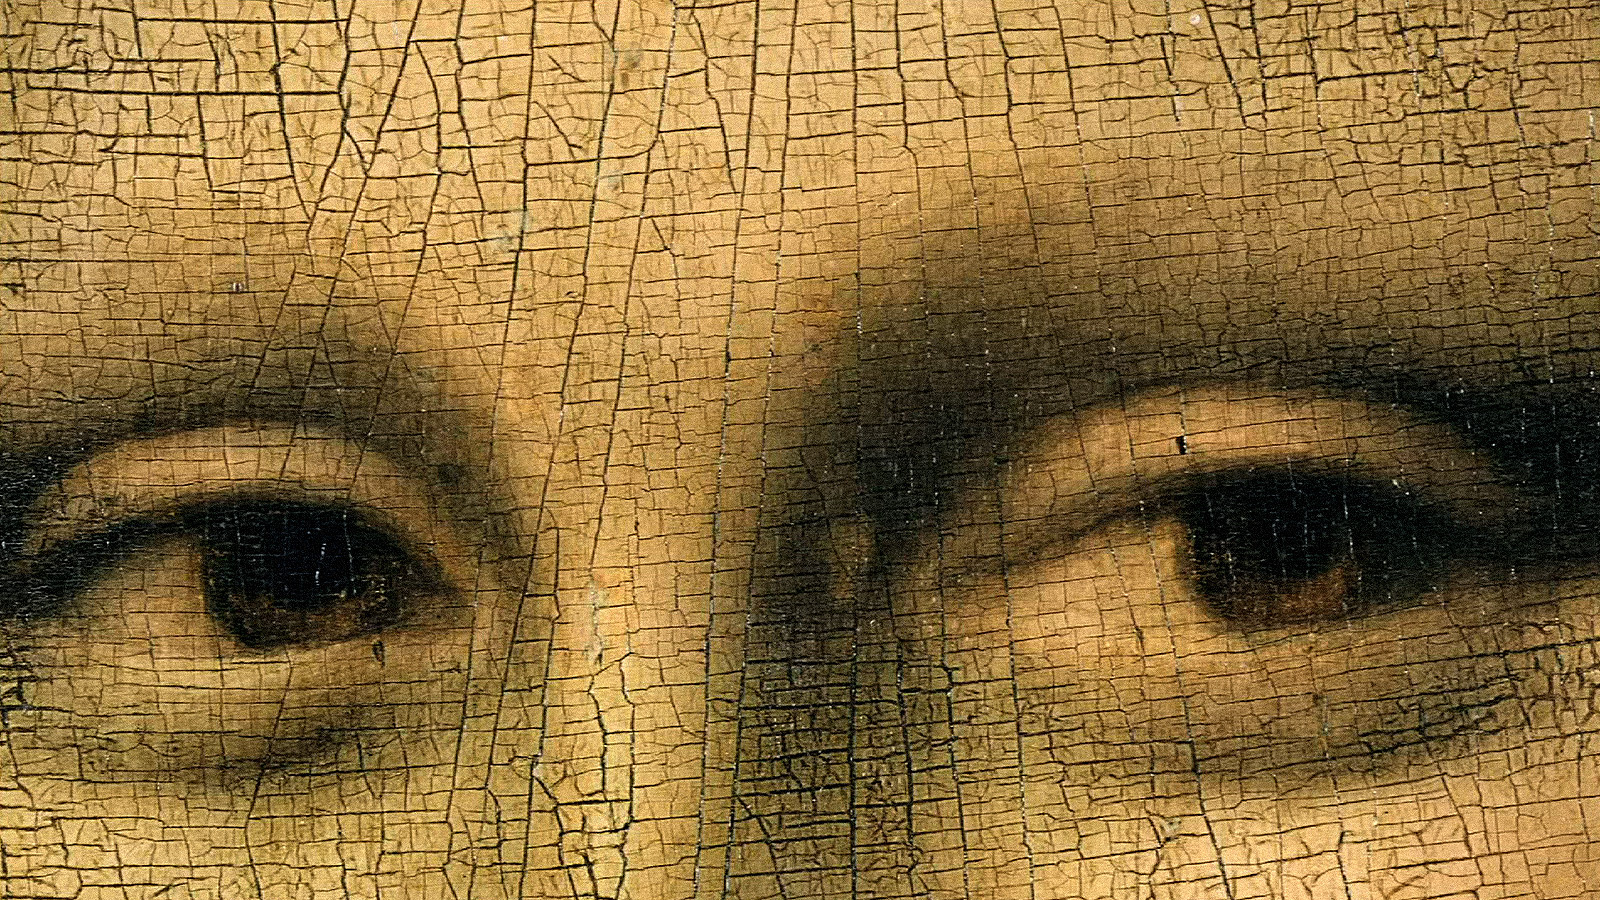 Mona Lisa's Smile Might Have Been a Man's - Secrets in the News: April 23 - May 6, 2016 | News | Secrets of the Dead | PBS